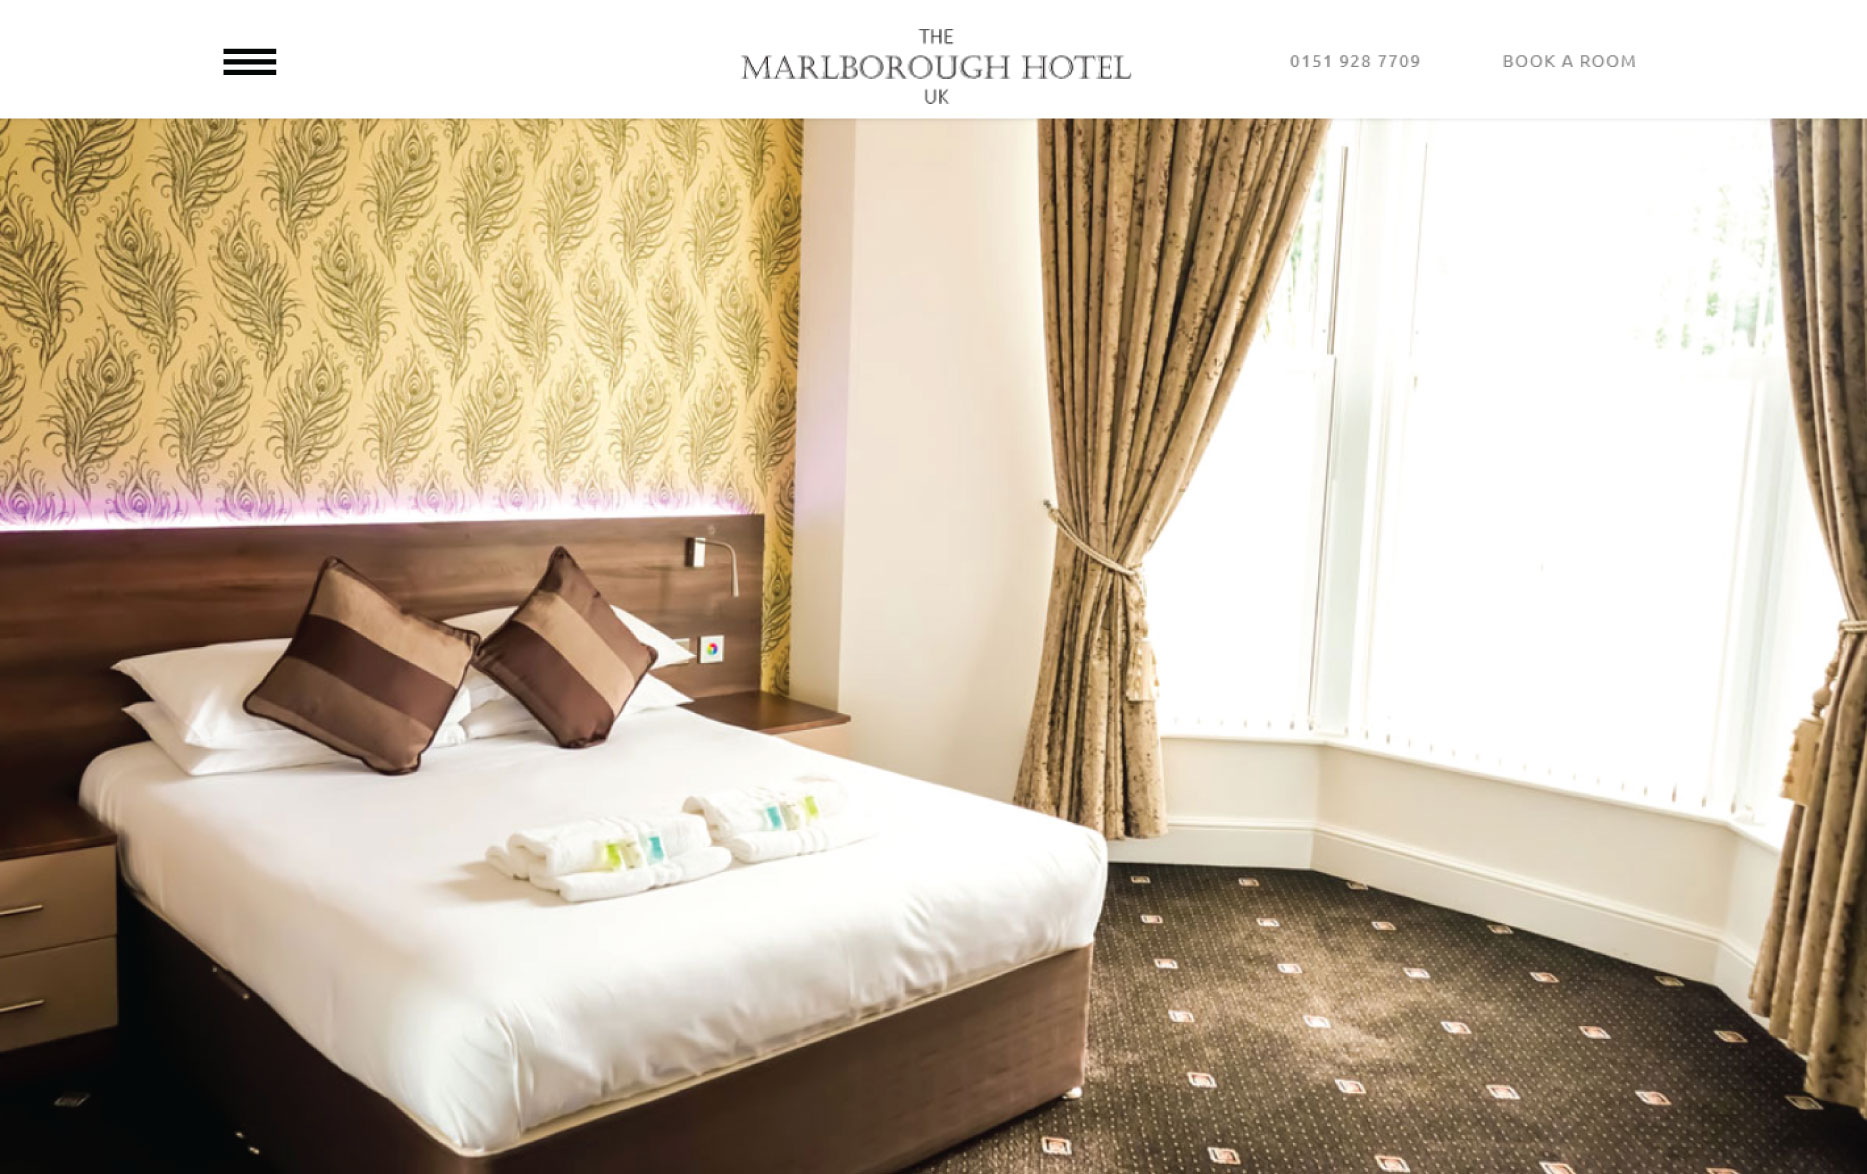 Marlborough Hotel UK